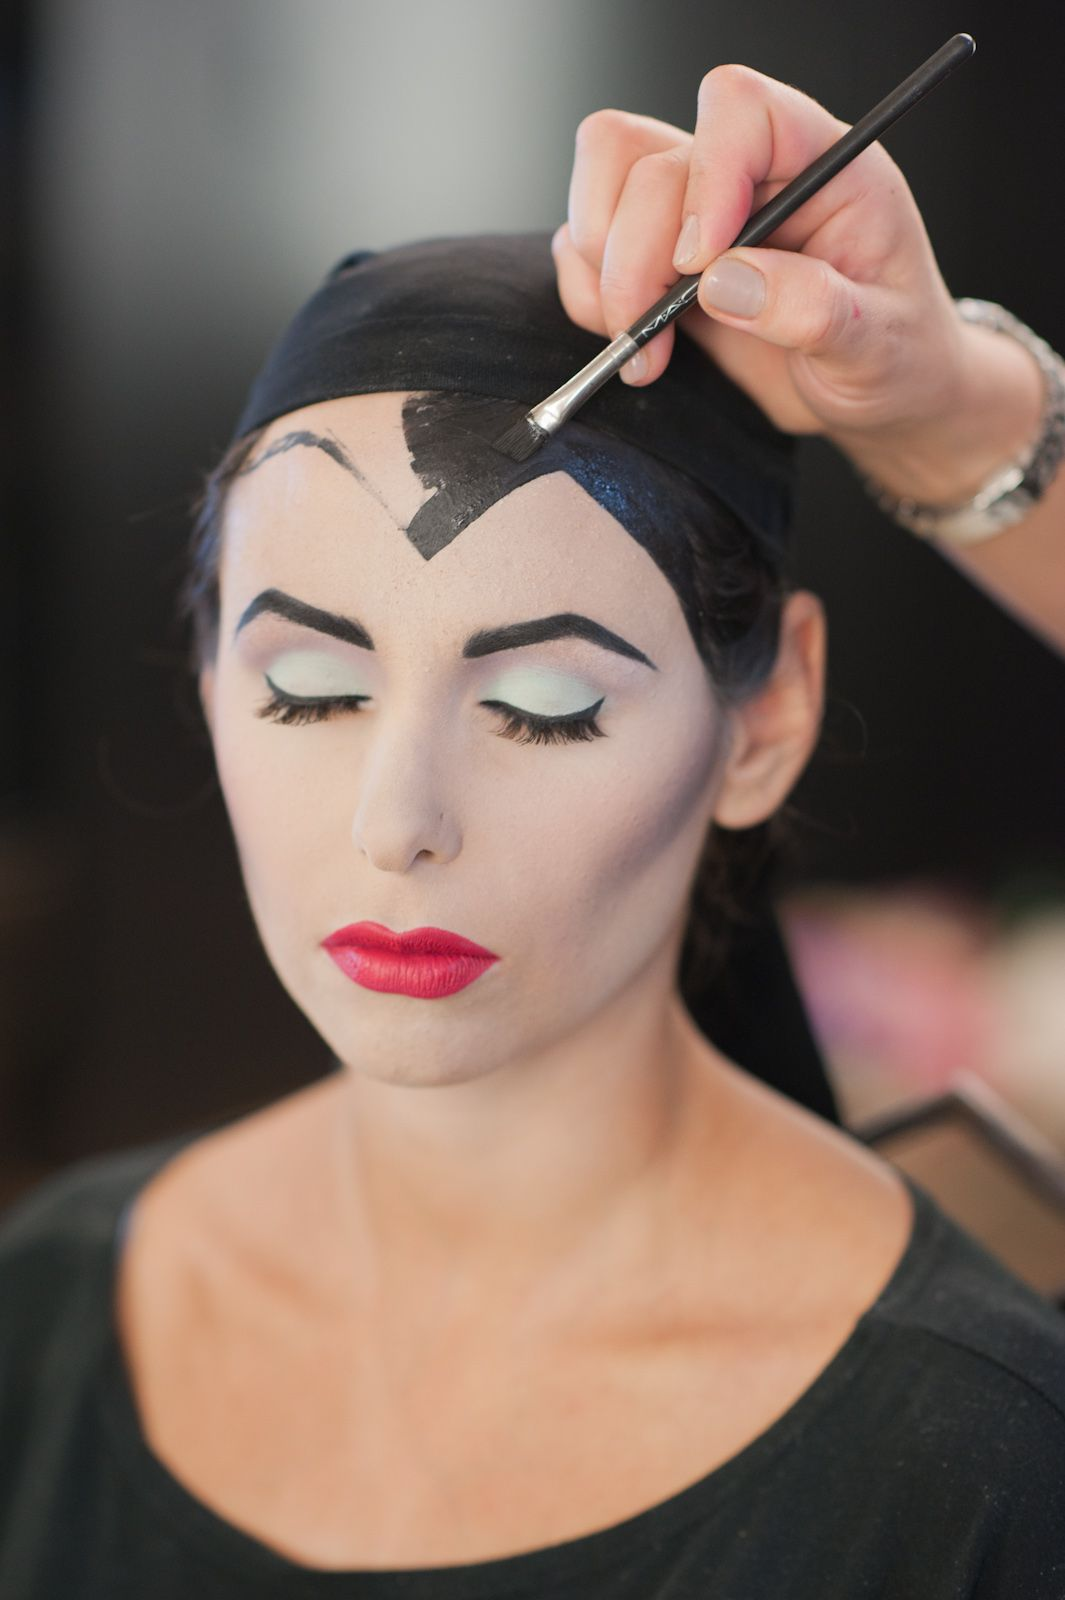 Maleficent costume and makeup tutorial costumes halloween maleficent 4 ah mazing diy halloween makeup looks youve got to try baditri Gallery